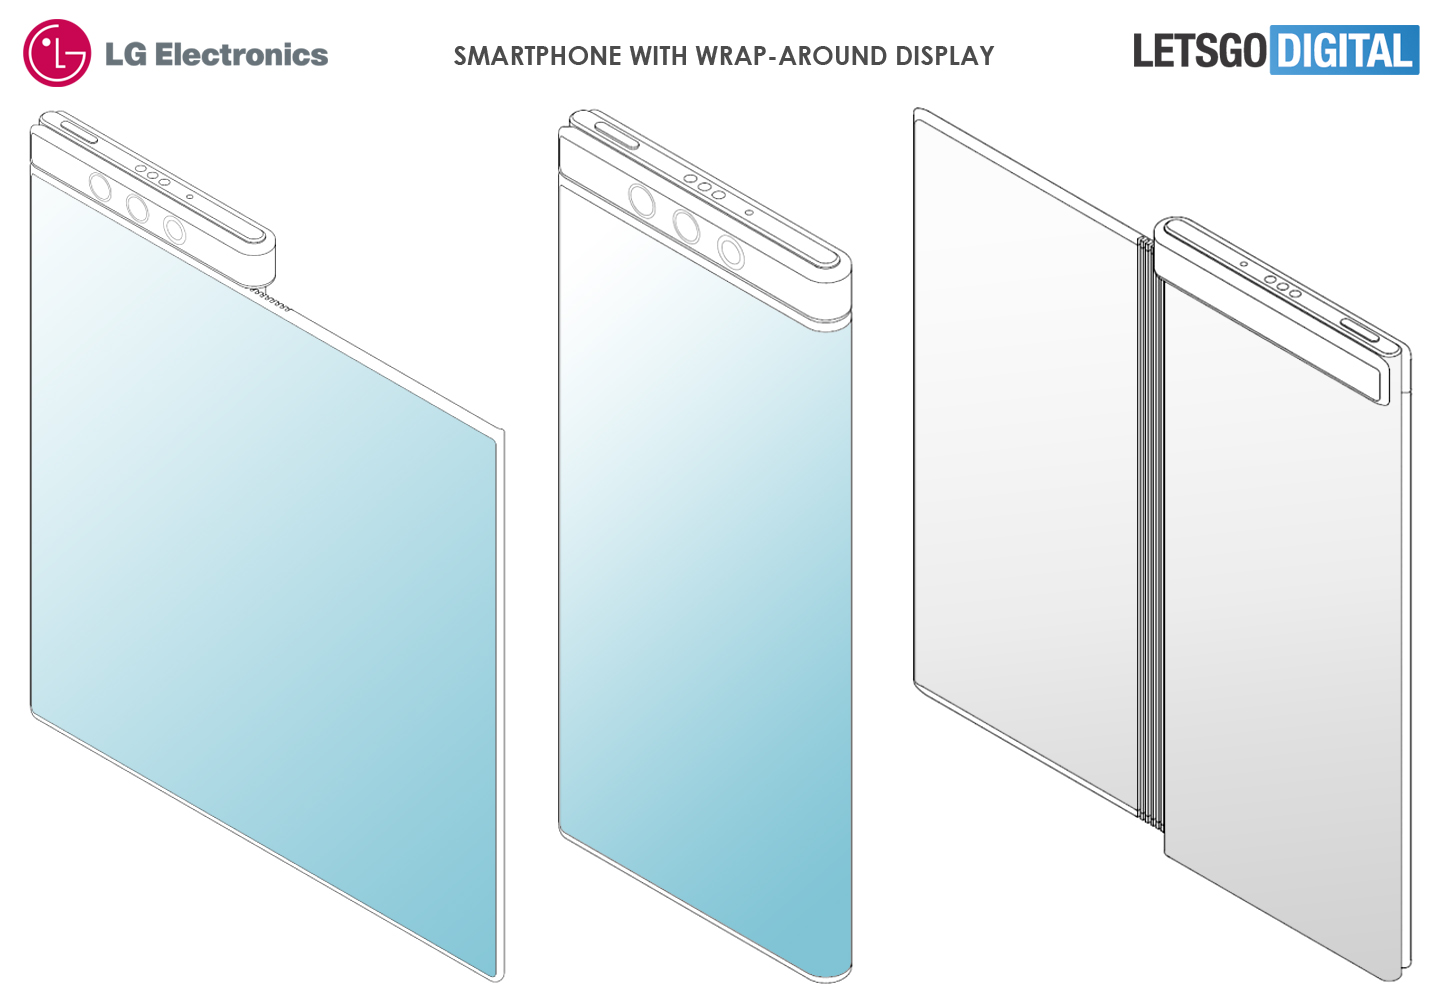 LG smartphone wraparound display